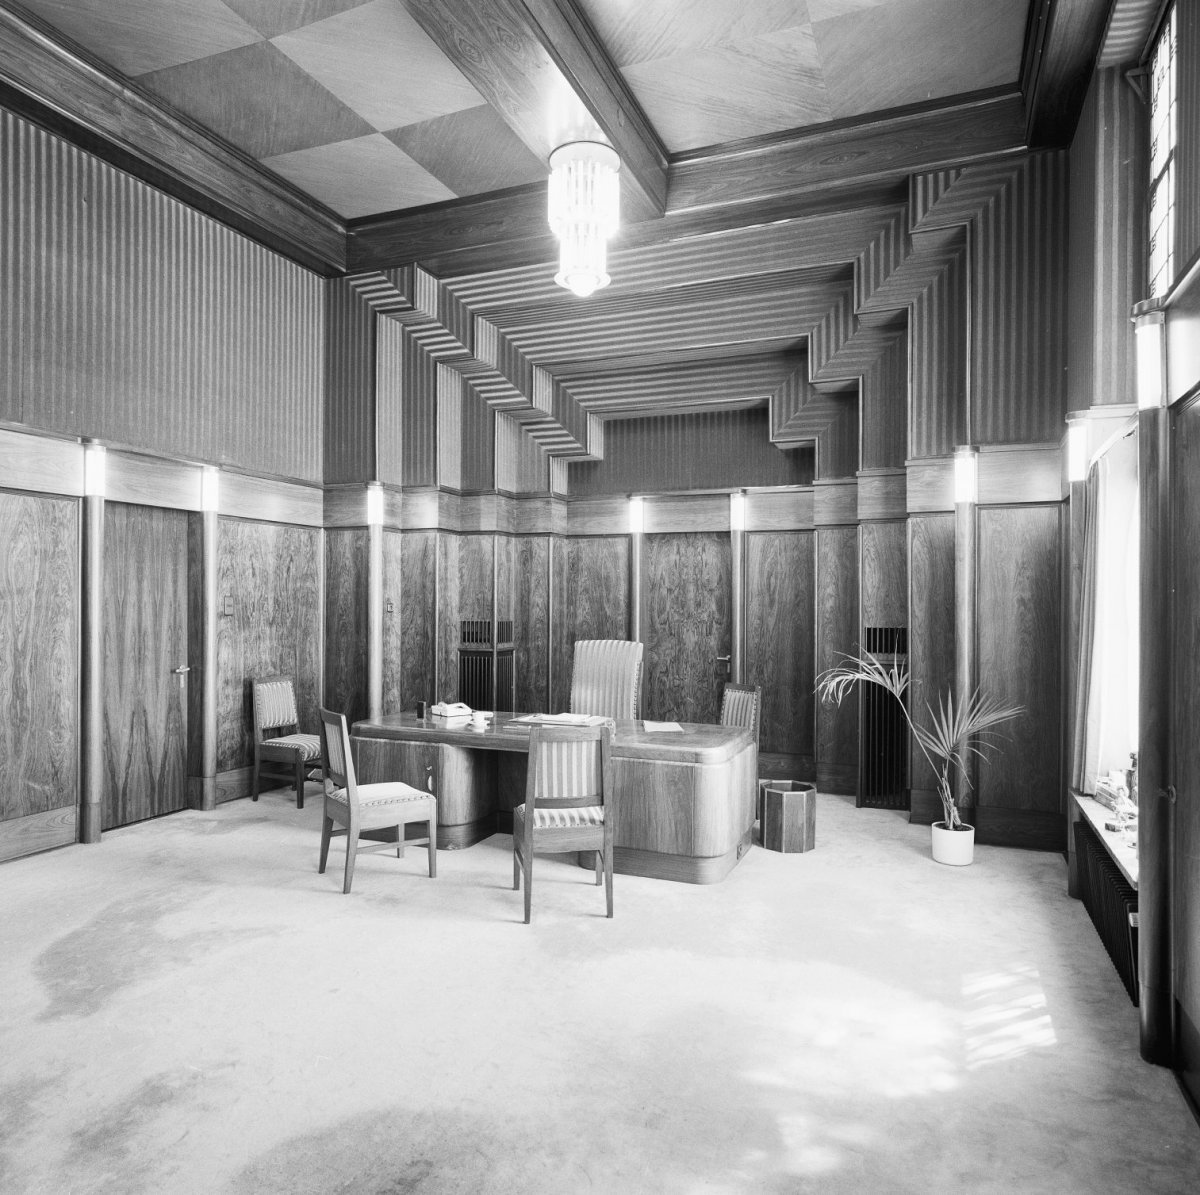 File interieur art deco interieur raadhuis tilburg for Photo deco interieur